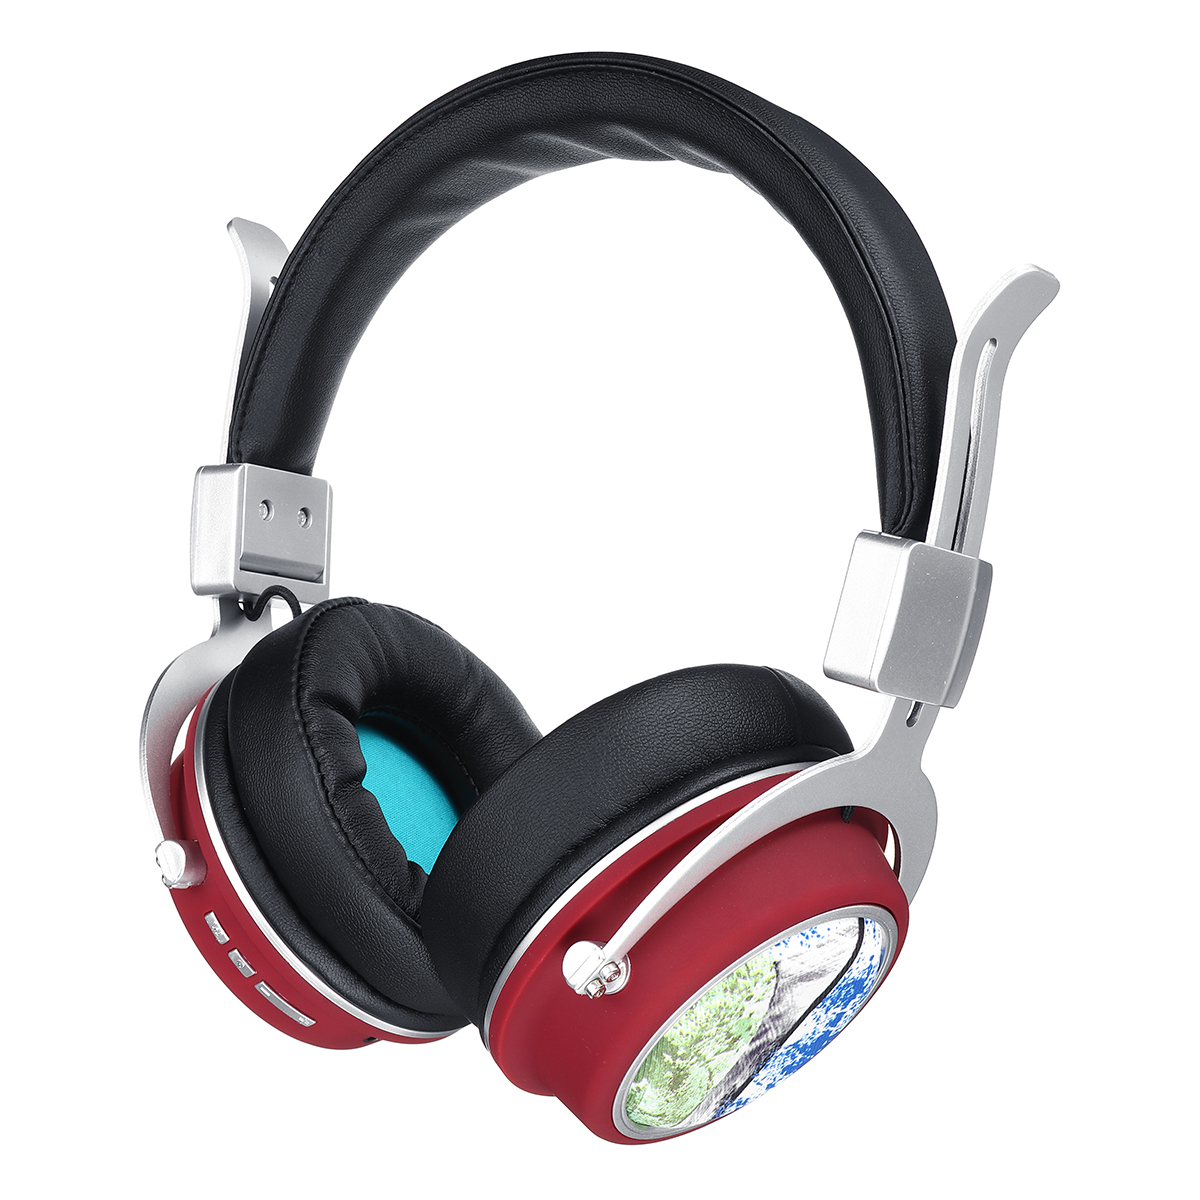 MH5 Wireless bluetooth 5.0 Headphone Foldable Pattern 3D Stereo TF Card AUX Headphone with Mic